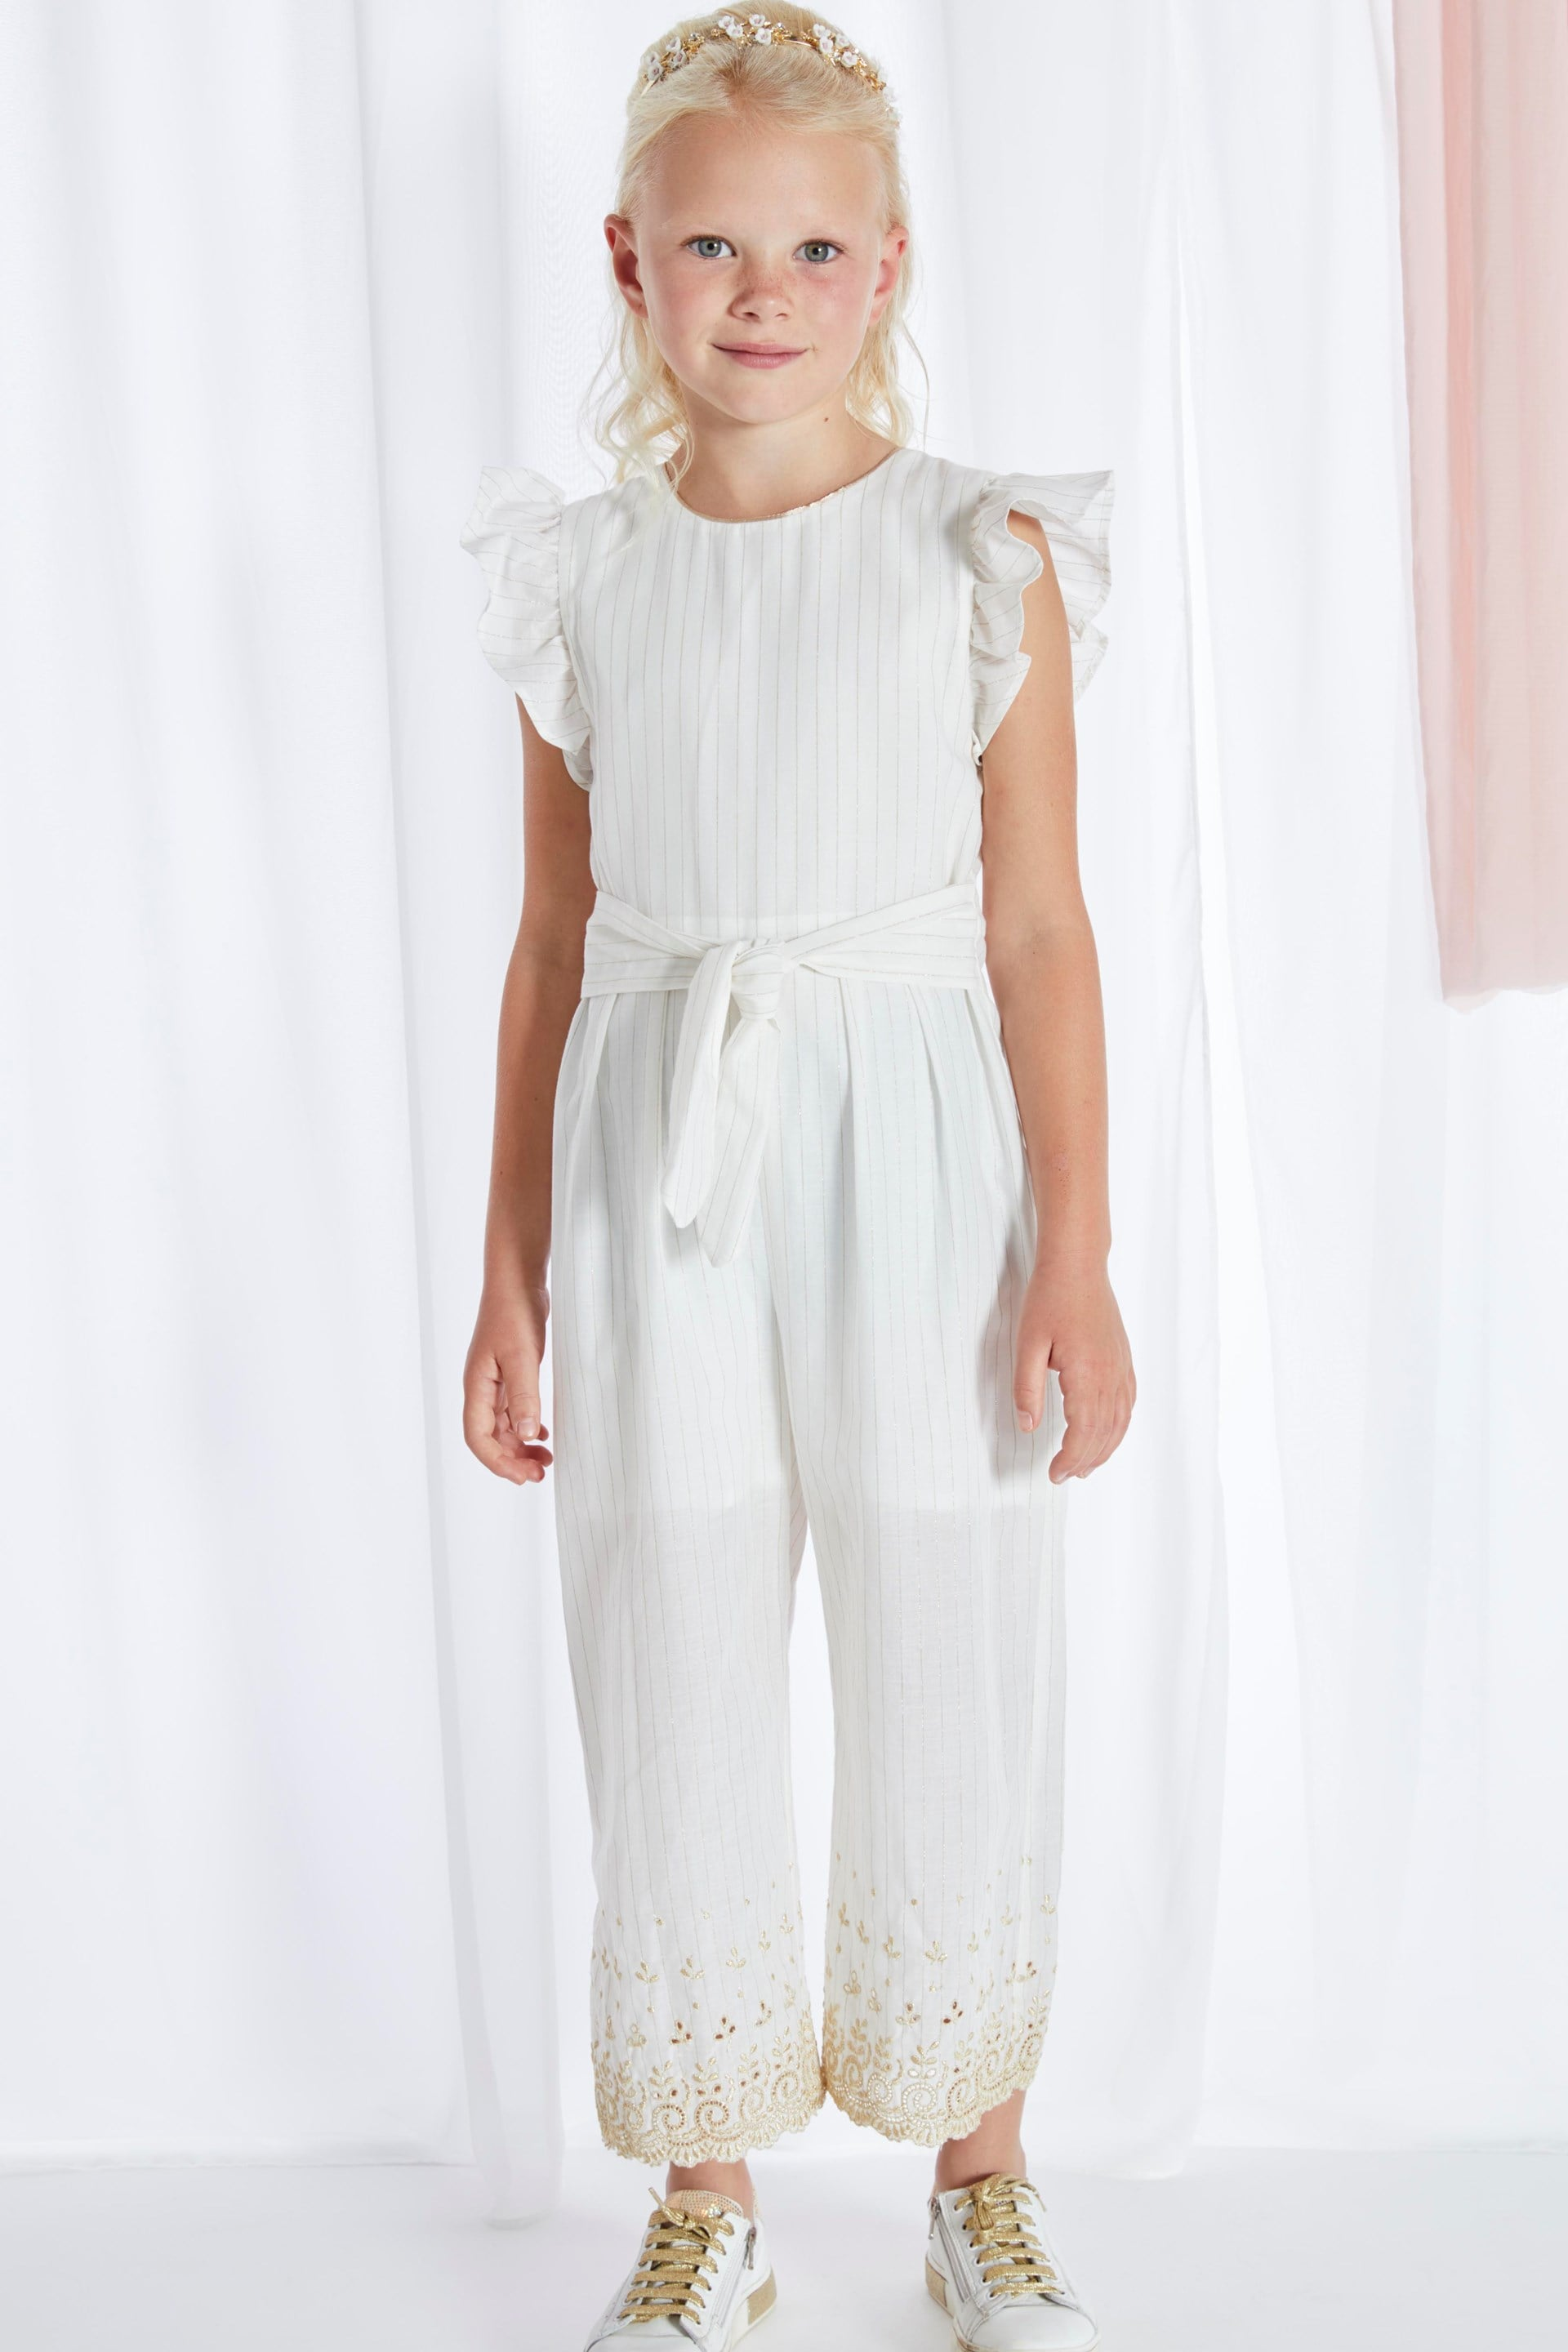 211 BLUE BAY G G JUMPSUIT OFF WHITE